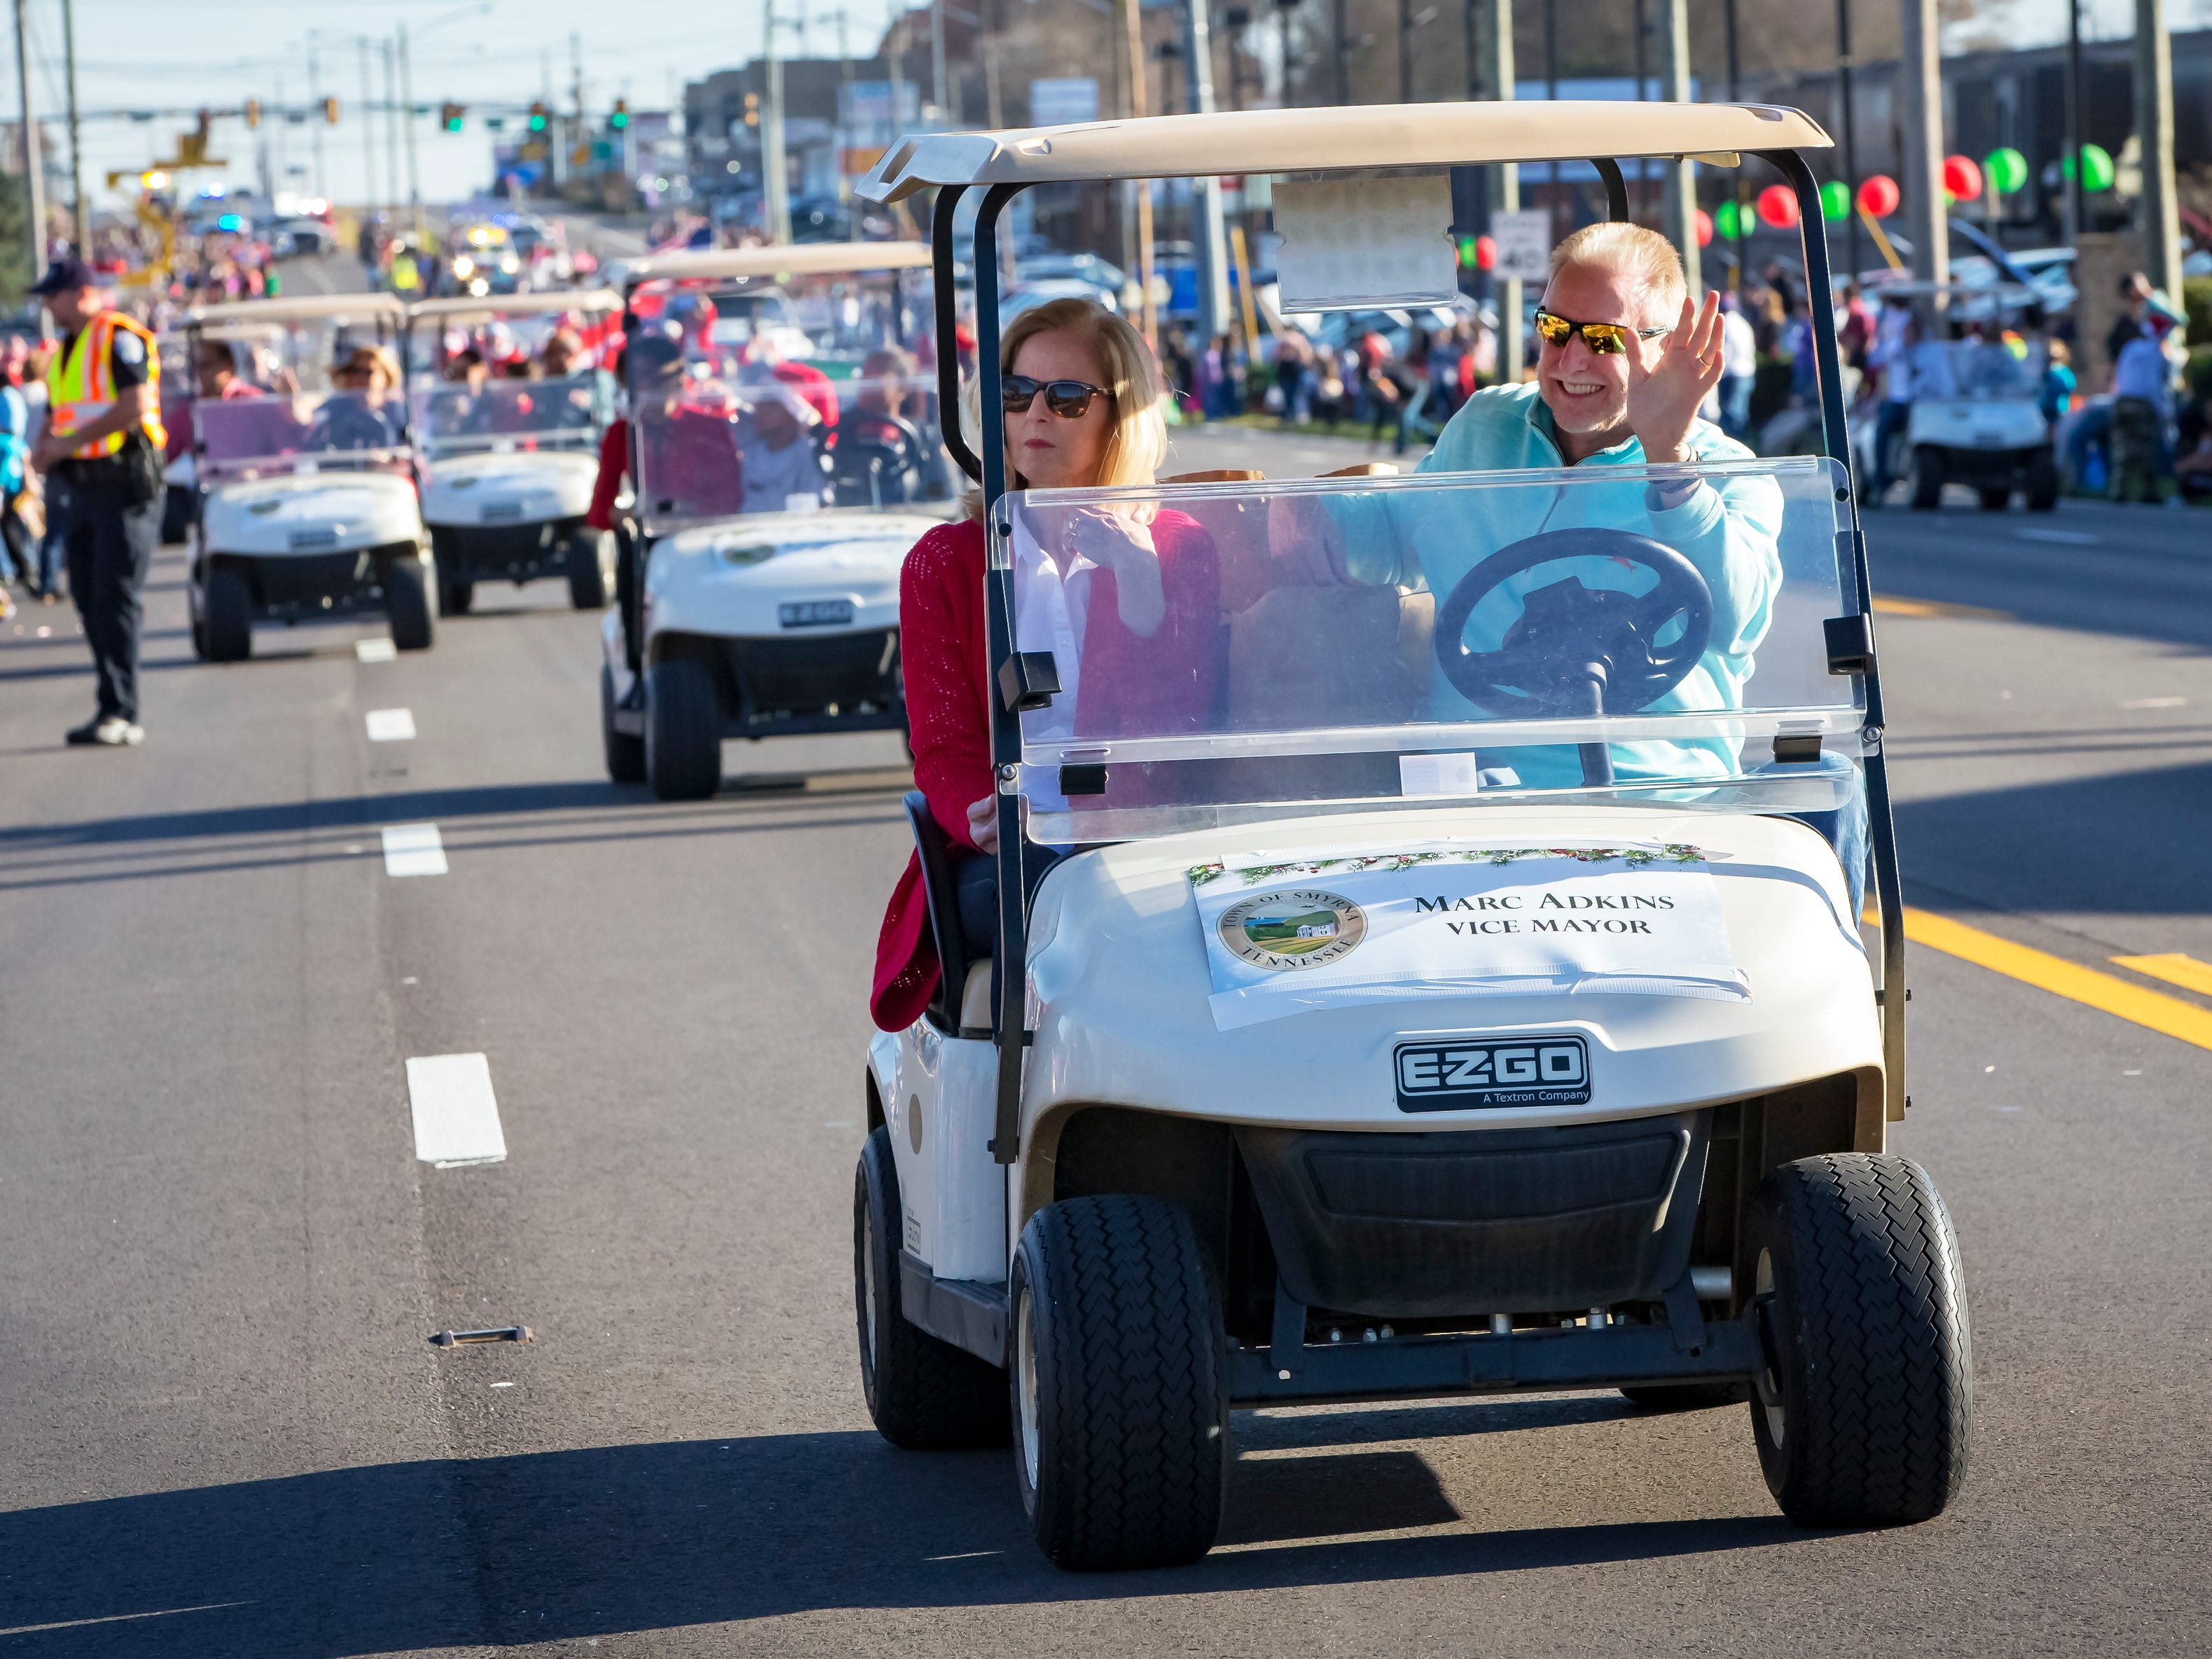 Smyrna's 44th annual Christmas parade was held Sunday, Dec. 2, 2018. Vice Mayor Marc Adkins and his wife Connie rode in a golf cart.